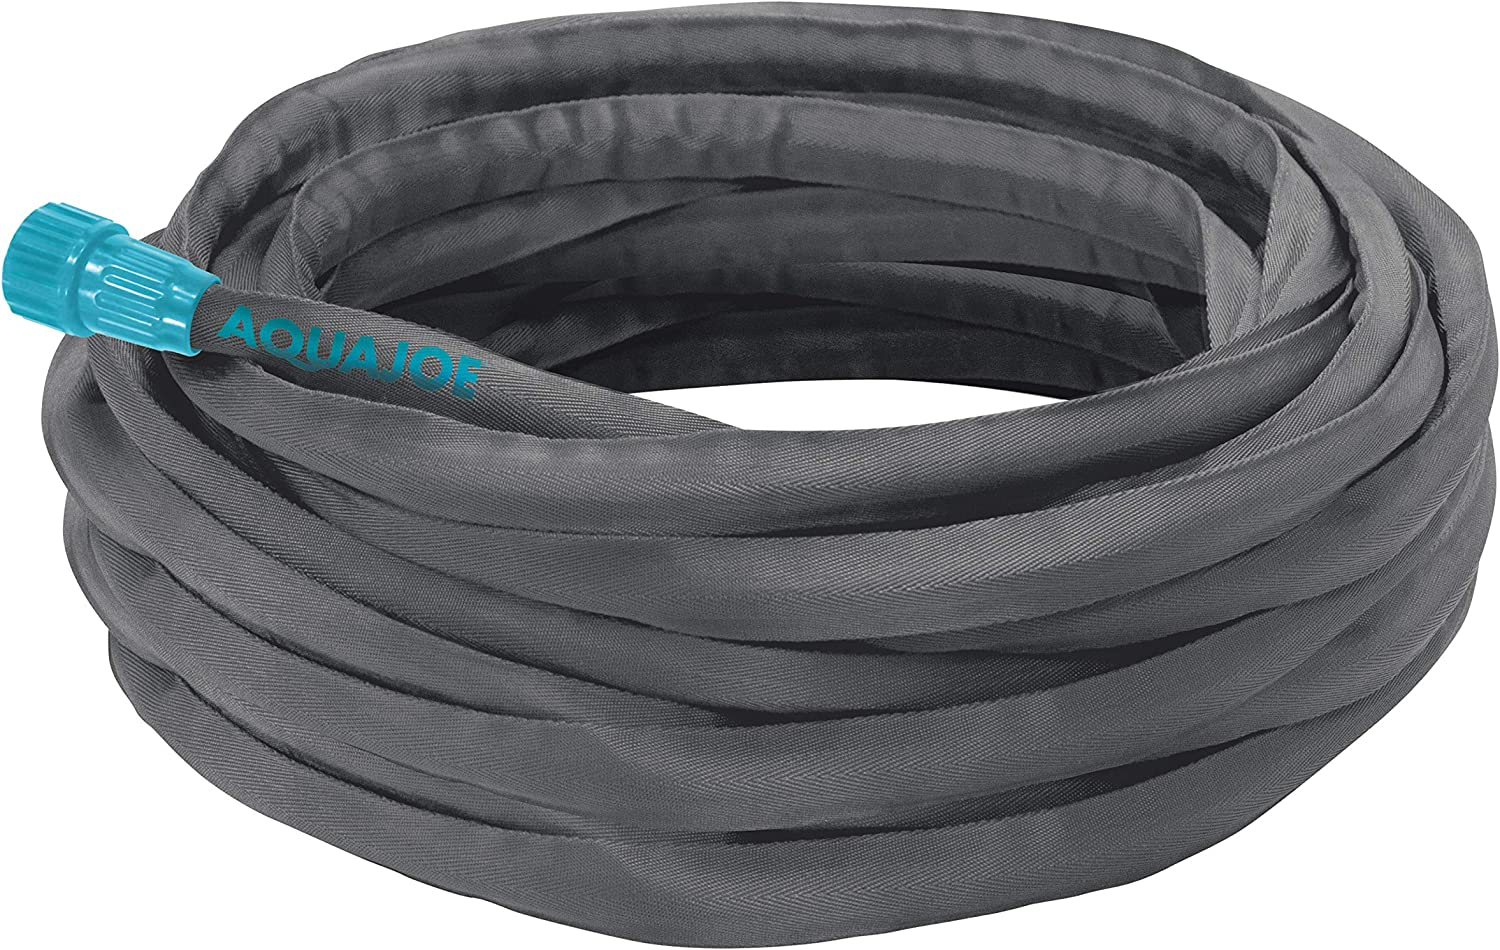 Aqua Joe AJFJH75 75-Foot Ultra Flexible Kink Free Fiberjacket Garden Hose, Grey